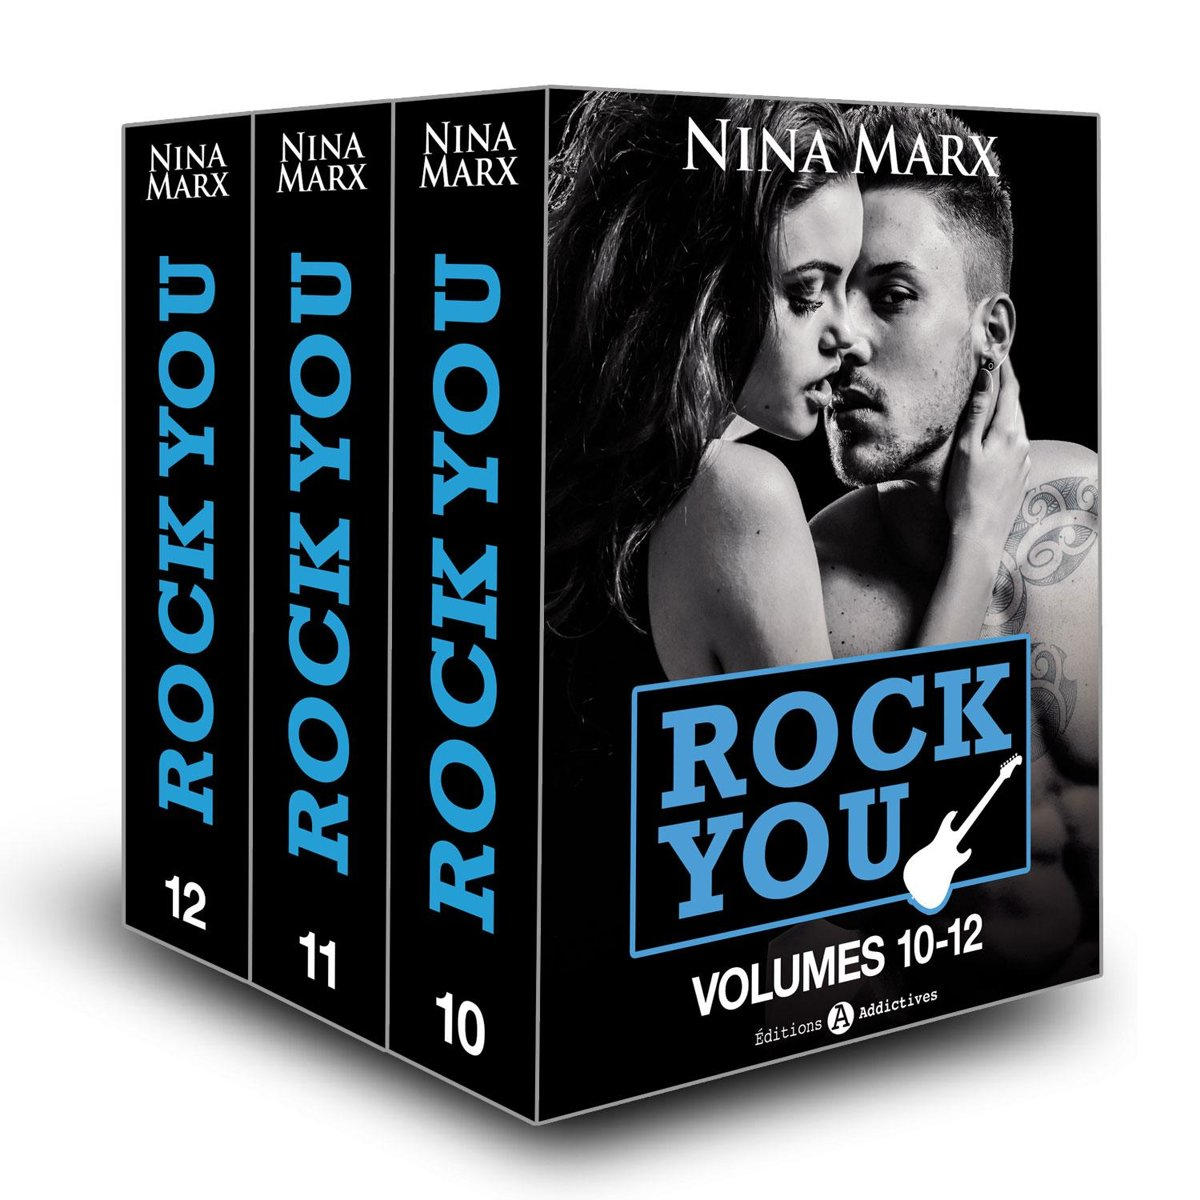 Rock you, volumes 10-12